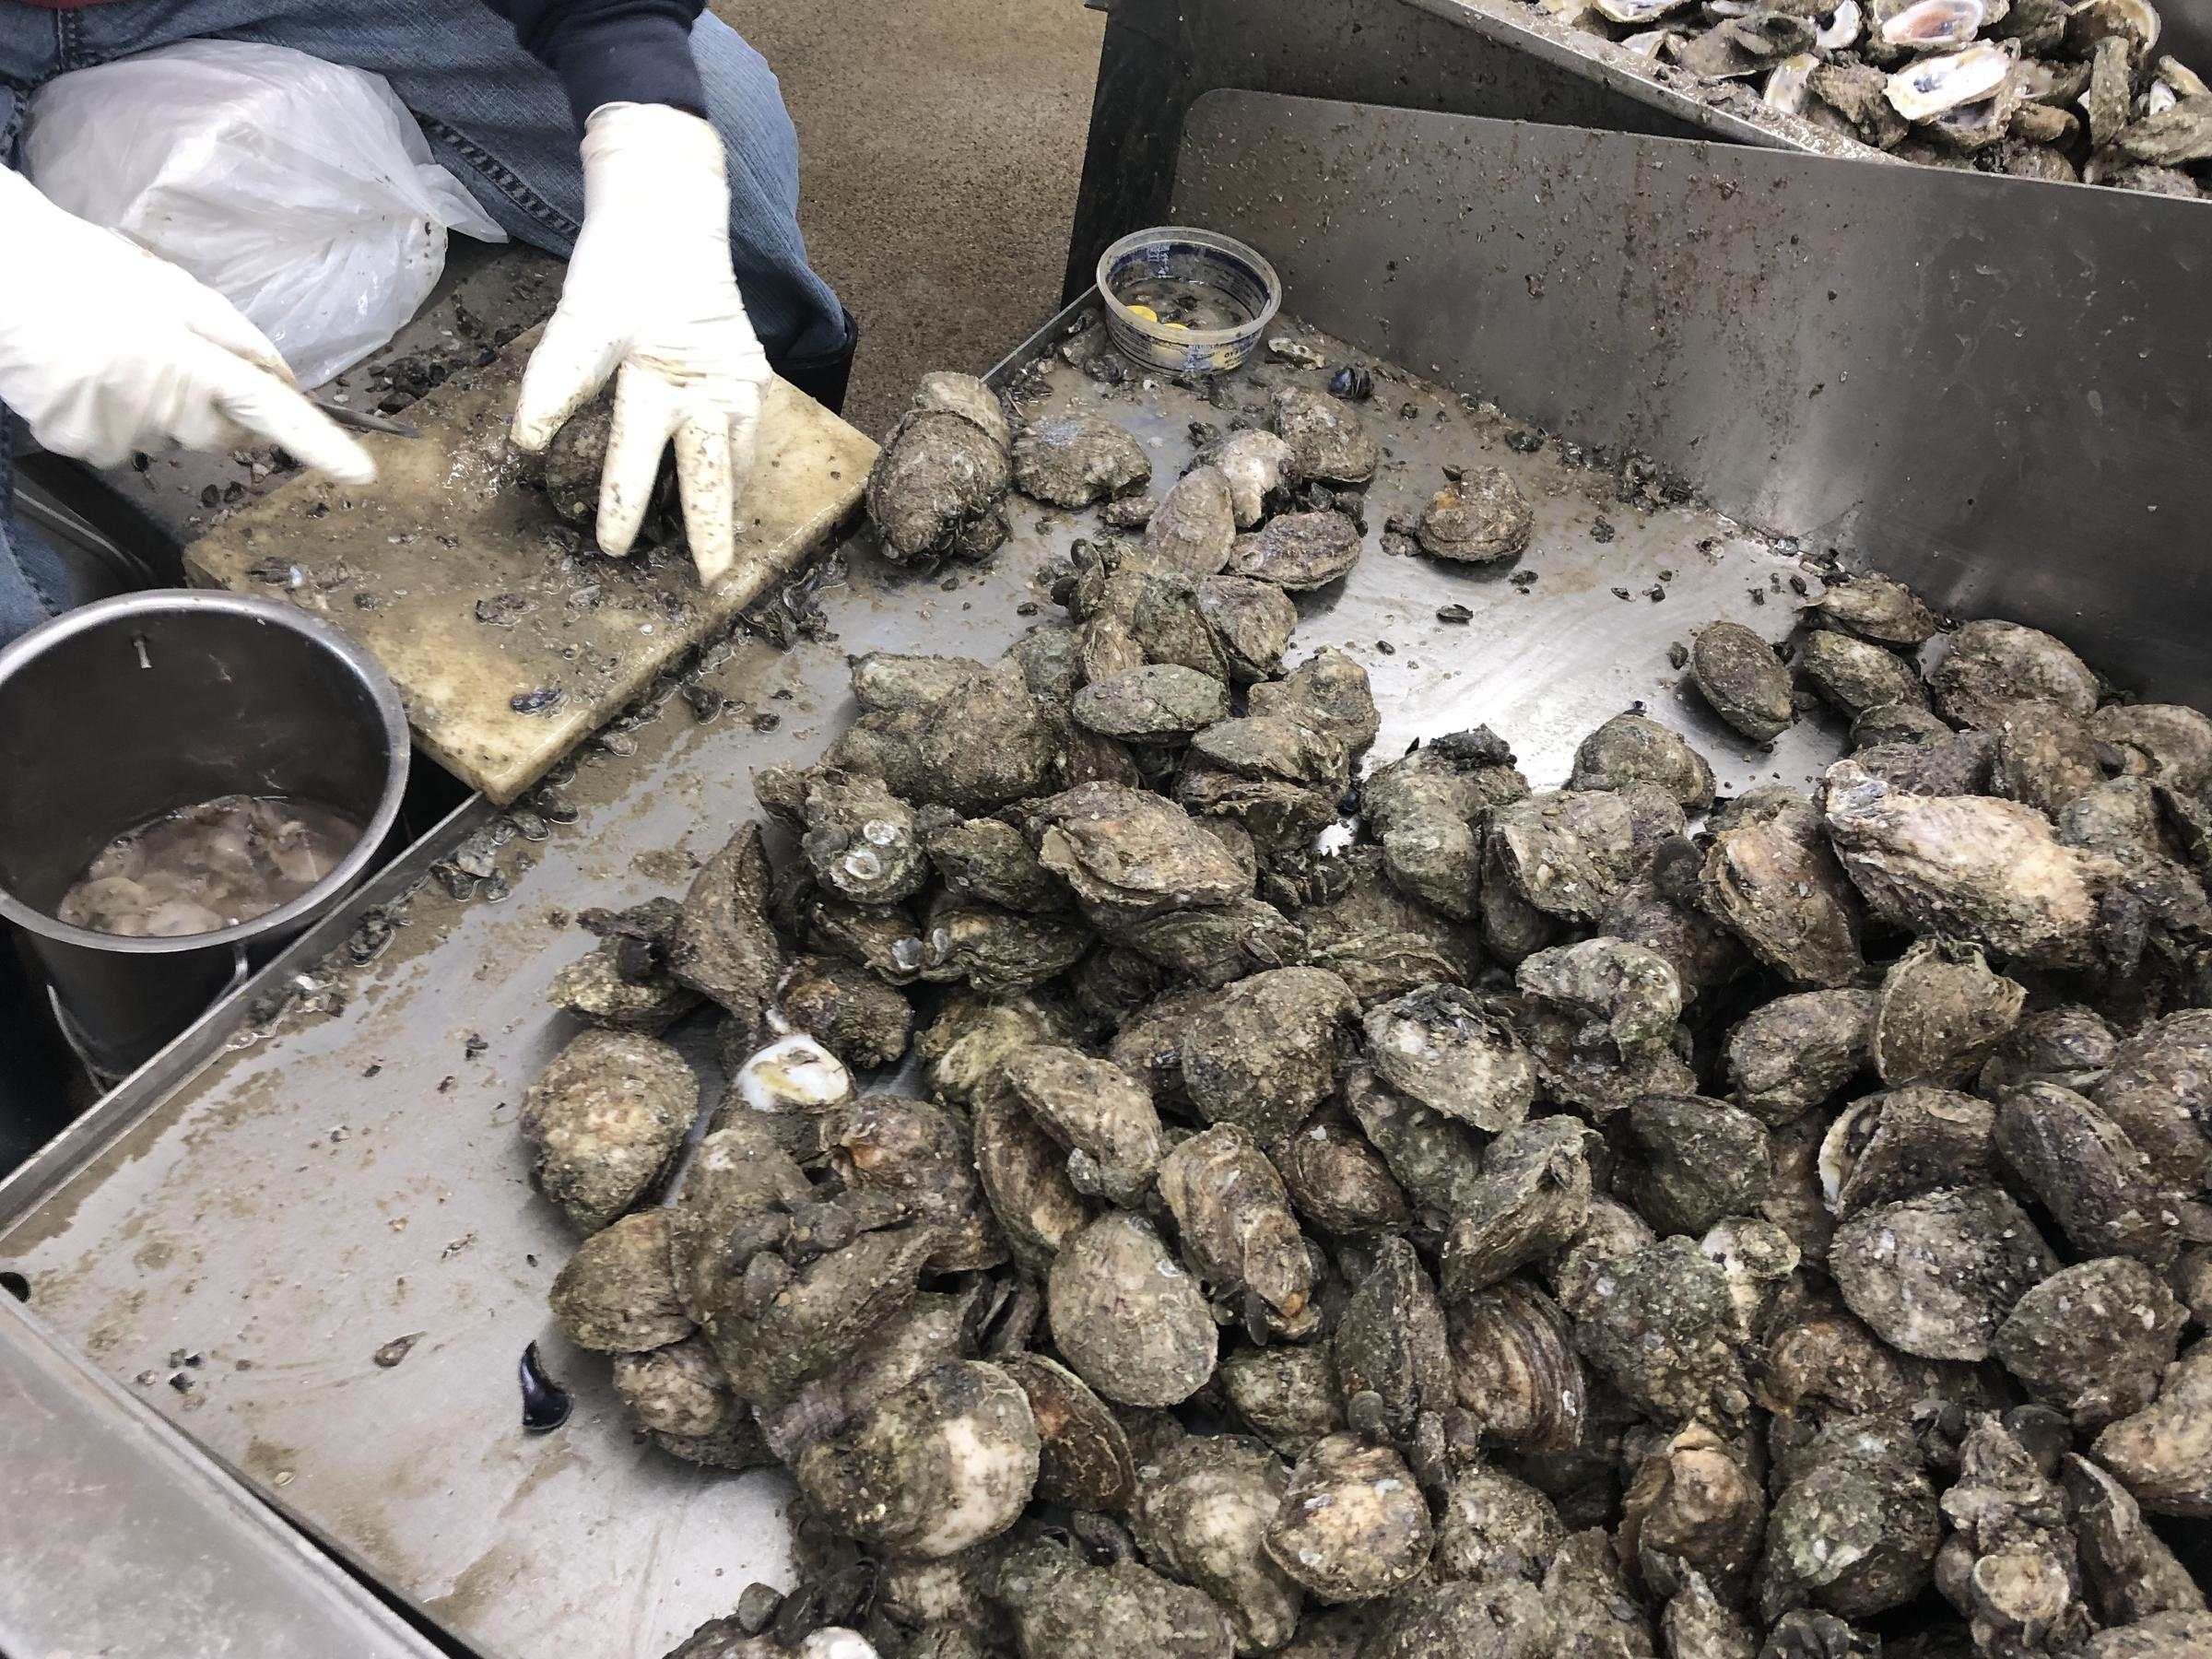 Fisheries And Fishermen Hard Hit By Decline Of Oysters On Gulf Coast